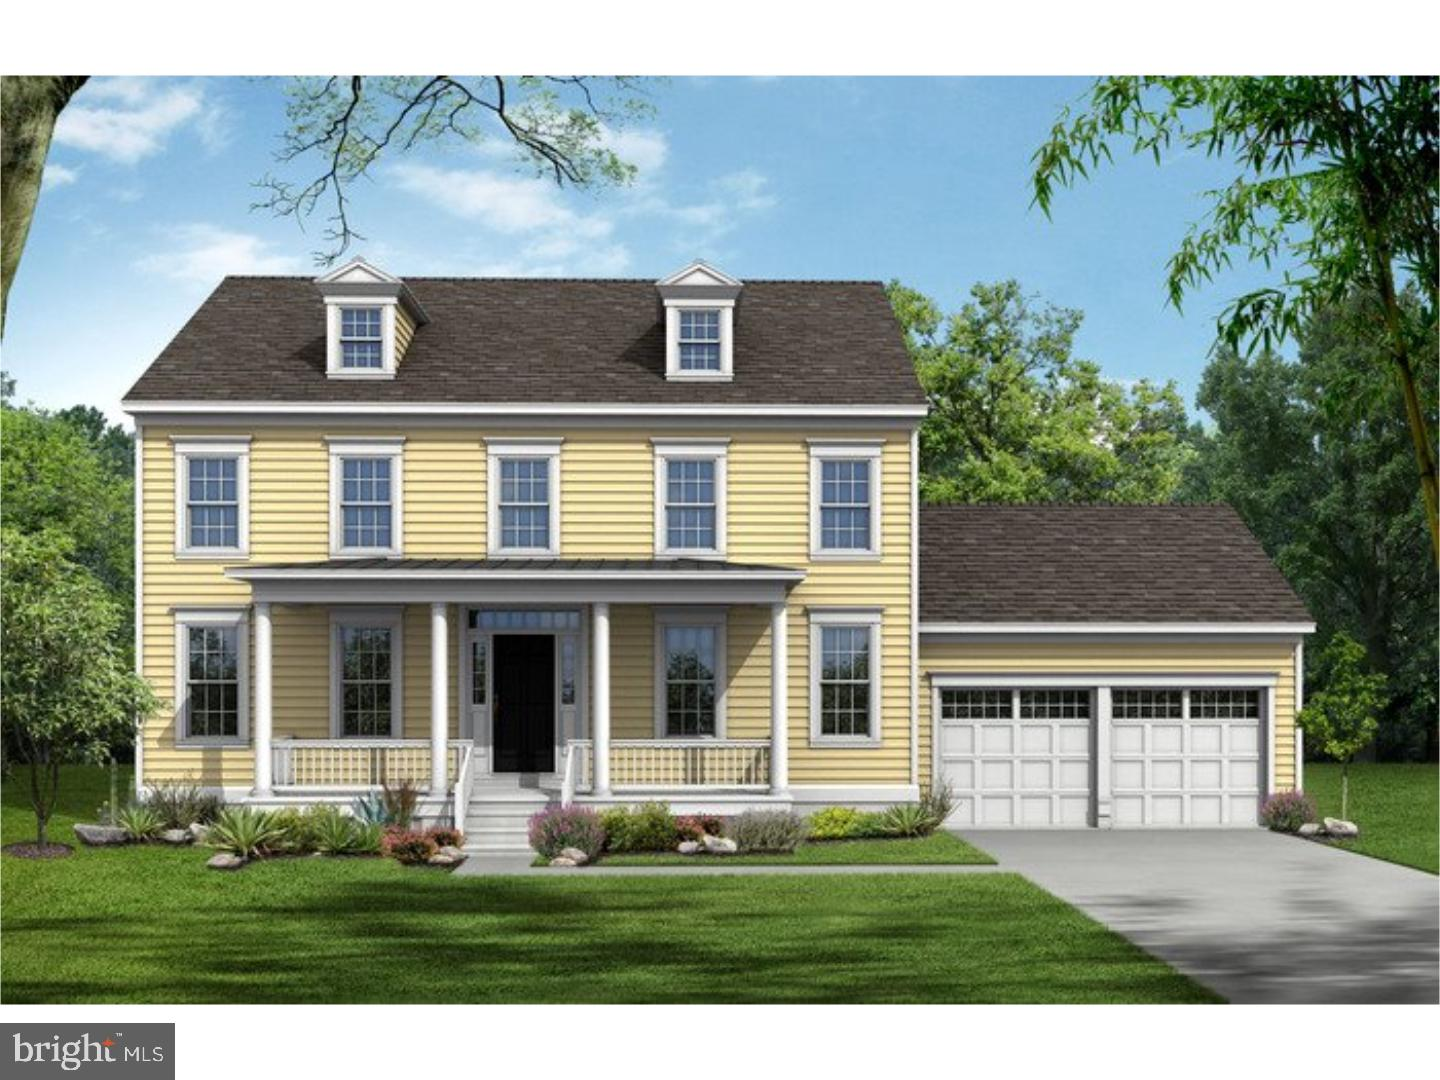 Welcome to the Town of Whitehall, Delaware's newest walkable town, introducing an architecturally and historically significant new home community featuring residential and retail spaces that offer a true social fabric and a sense of place based on the planning principles of traditional neighborhood development. Announcing the newest Single Family Estate Floor Plans at the Town Of Whitehall, brought to you by one of Delaware's Premier local Family Builder's with over 40 years of experience - bringing excitement to Middletown's newest & most unique community.   This Christina model is 3400 square feet  with features that most other Builders consider upgrades. Granite Kitchens with Stainless Appliances, Center Islands, Hardwood Flooring, and Sumptuous Master Suites with en suite Tiled Baths are just a sampling of features in these new plans.This is an open floor plan with Kitchen,Breakfast Nook and adjacent Family Room all functioning as one. Front to back Living & Dining room can function as a single room for spacious entertaining. First floor Study/Office is private and serves as an optional In Law Suite in one of the many ways to customize this plan.  All homes enjoy extensive trim packages with large baseboard & full window trim, as well as 9 foot full poured foundations, Andersen windows, 2 car garages, and cement fiber Hardie* siding. (*remarkable at these price points in New Construction) . Model Homes are open 11-5 daily